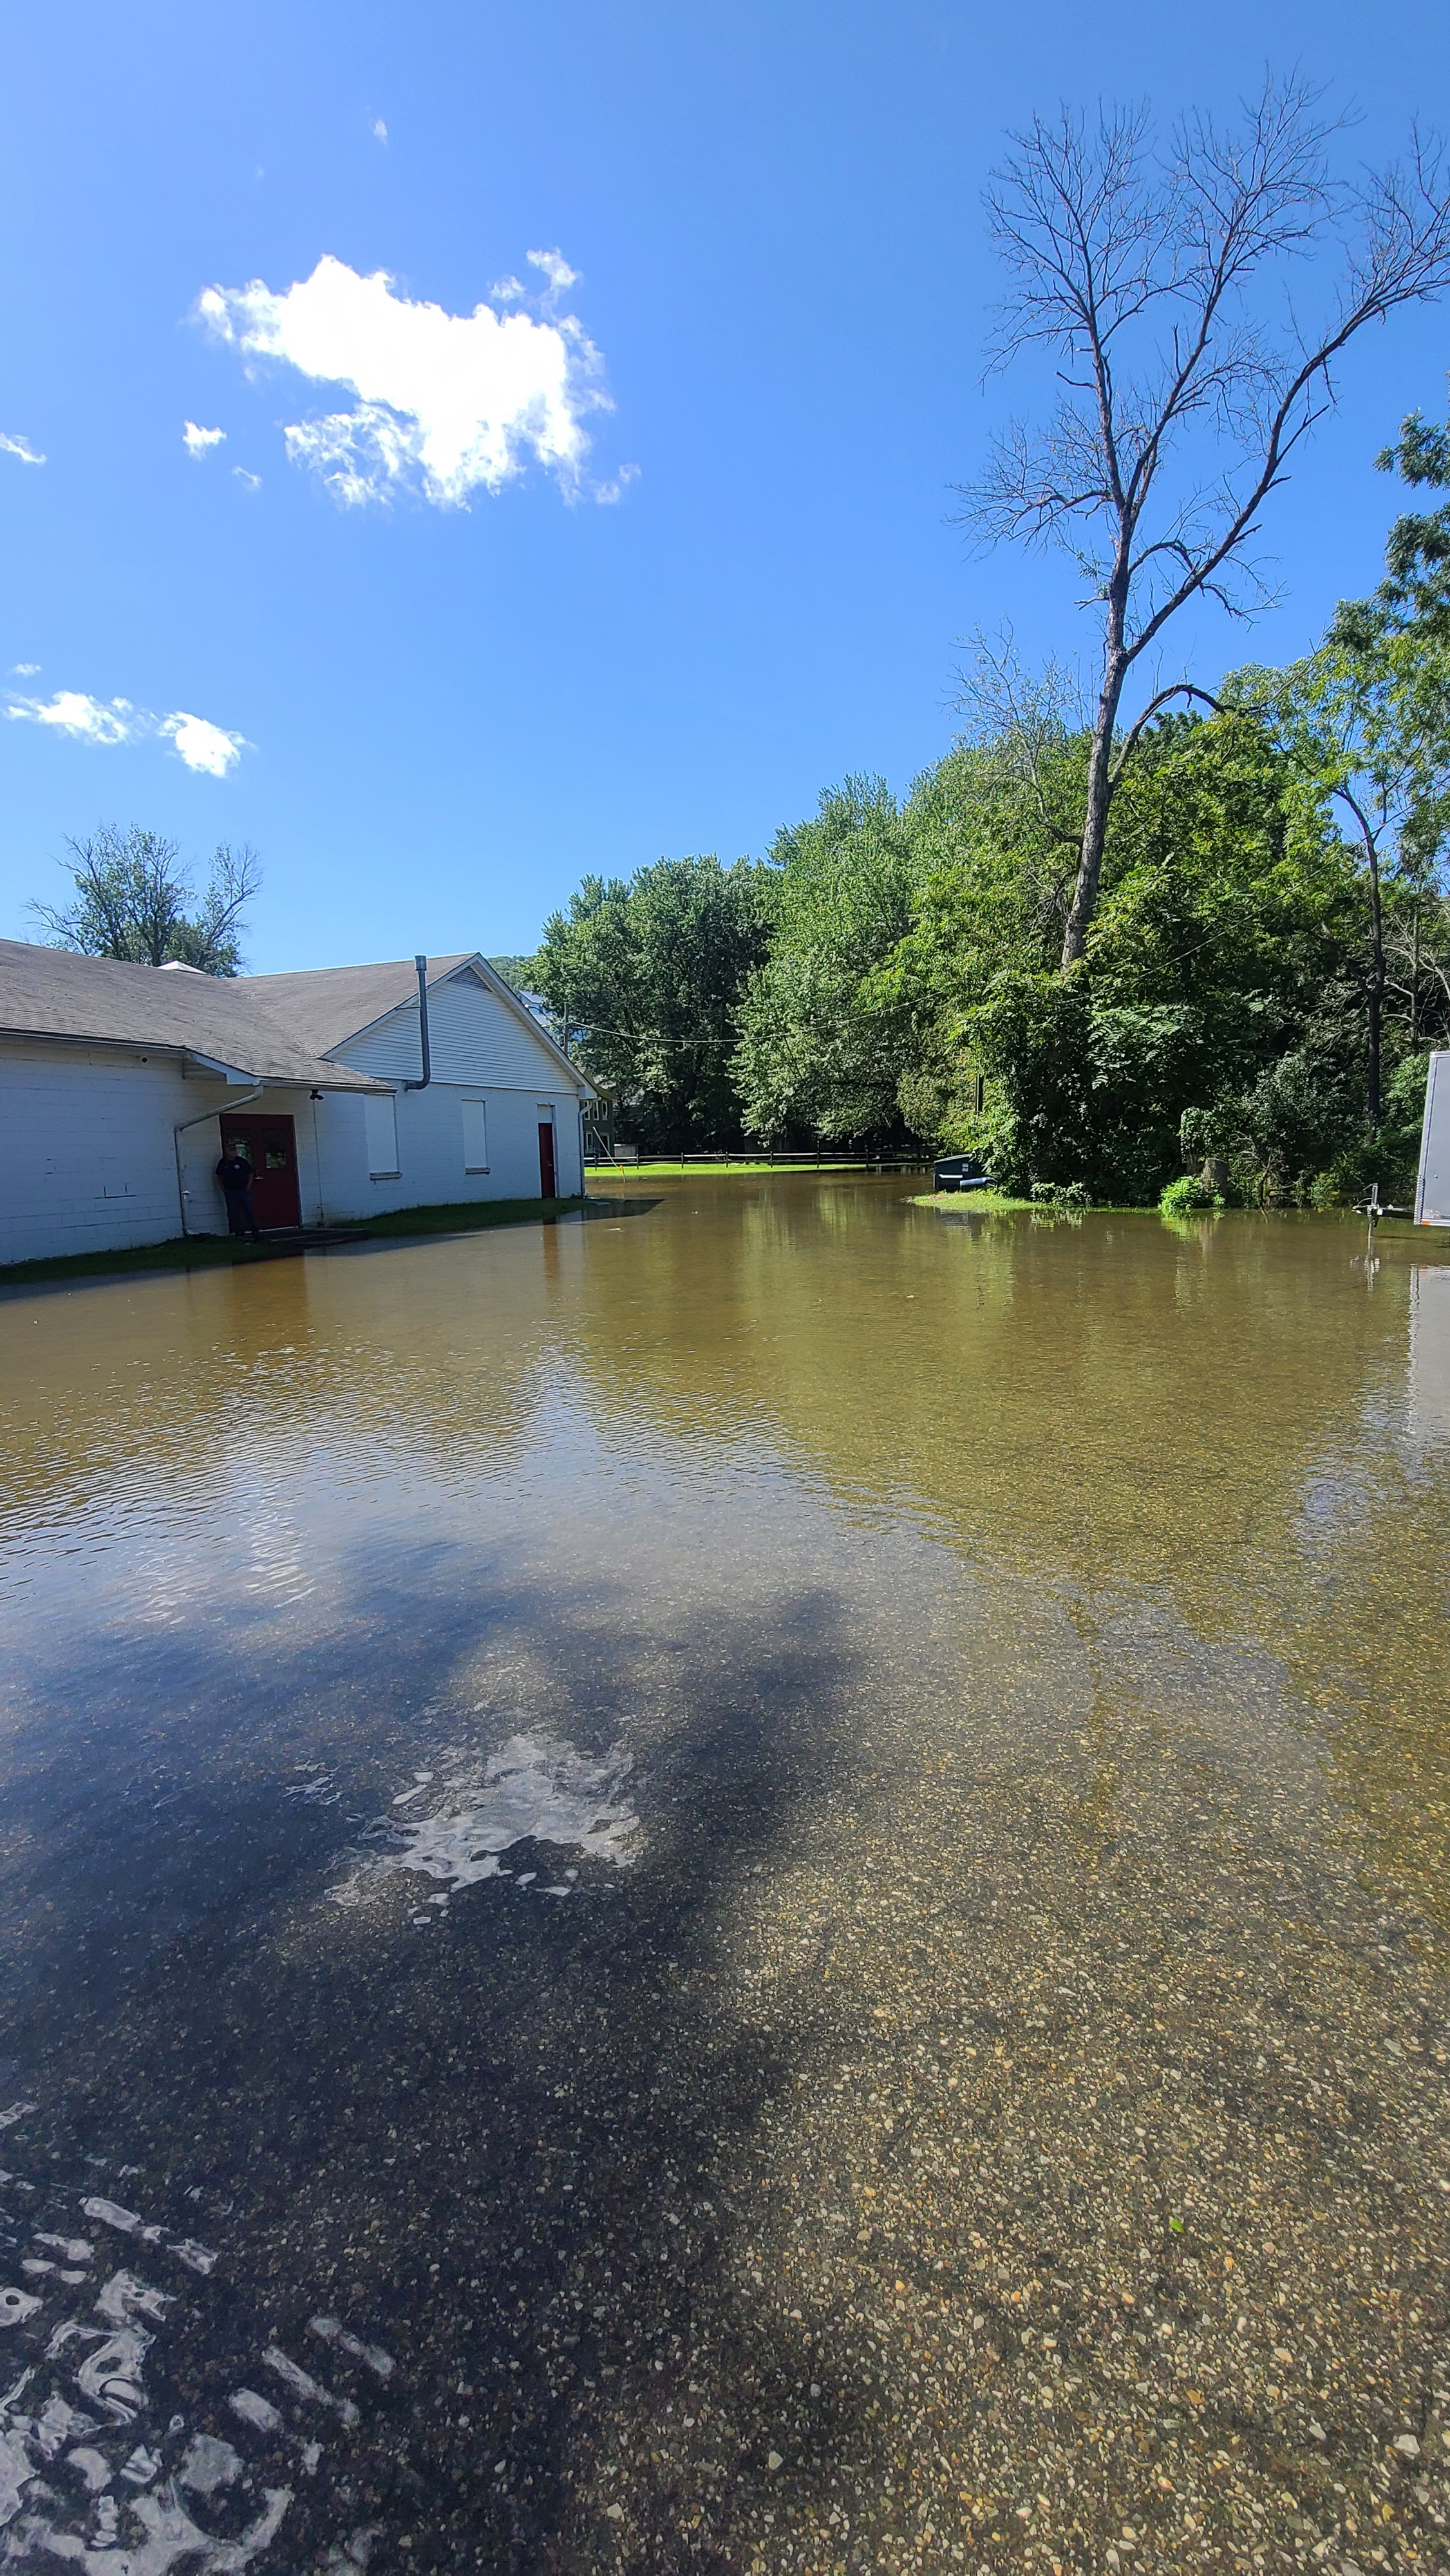 <strong>In the aftermath of Hurricane Ida and the downpour of rain and wind, the Wassaic firehouse flooded on Thursday, Sept. 2. <em>Photo submitted</em></strong>